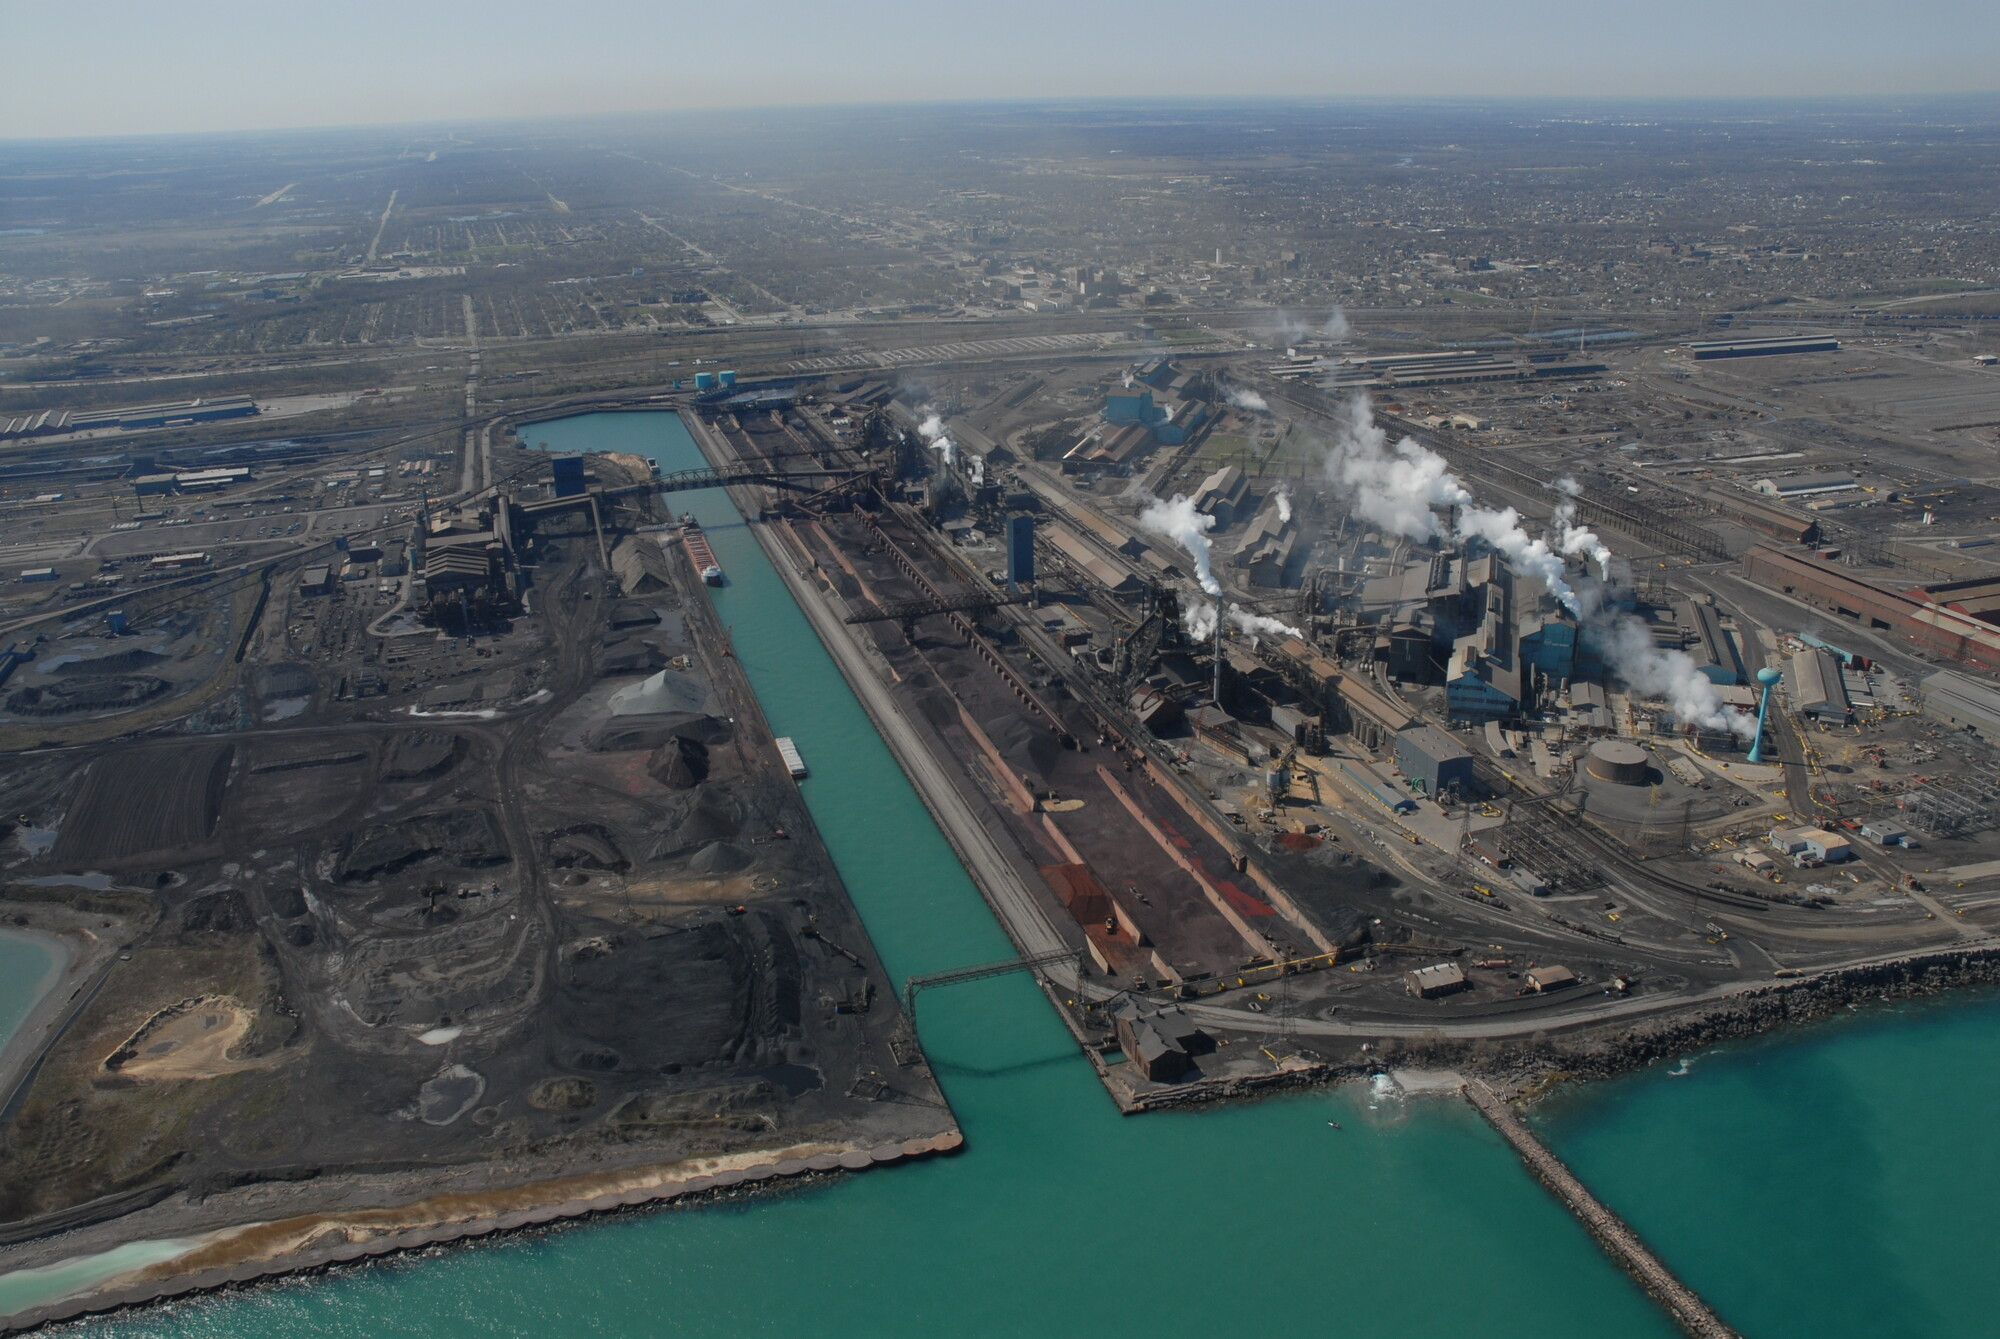 The Gary Works Of U S Steel Is The Second Largest Steel Works Operating In The Usa With A Steelmaking Capability Of 7 5 Million Tons Of Steel Per Year